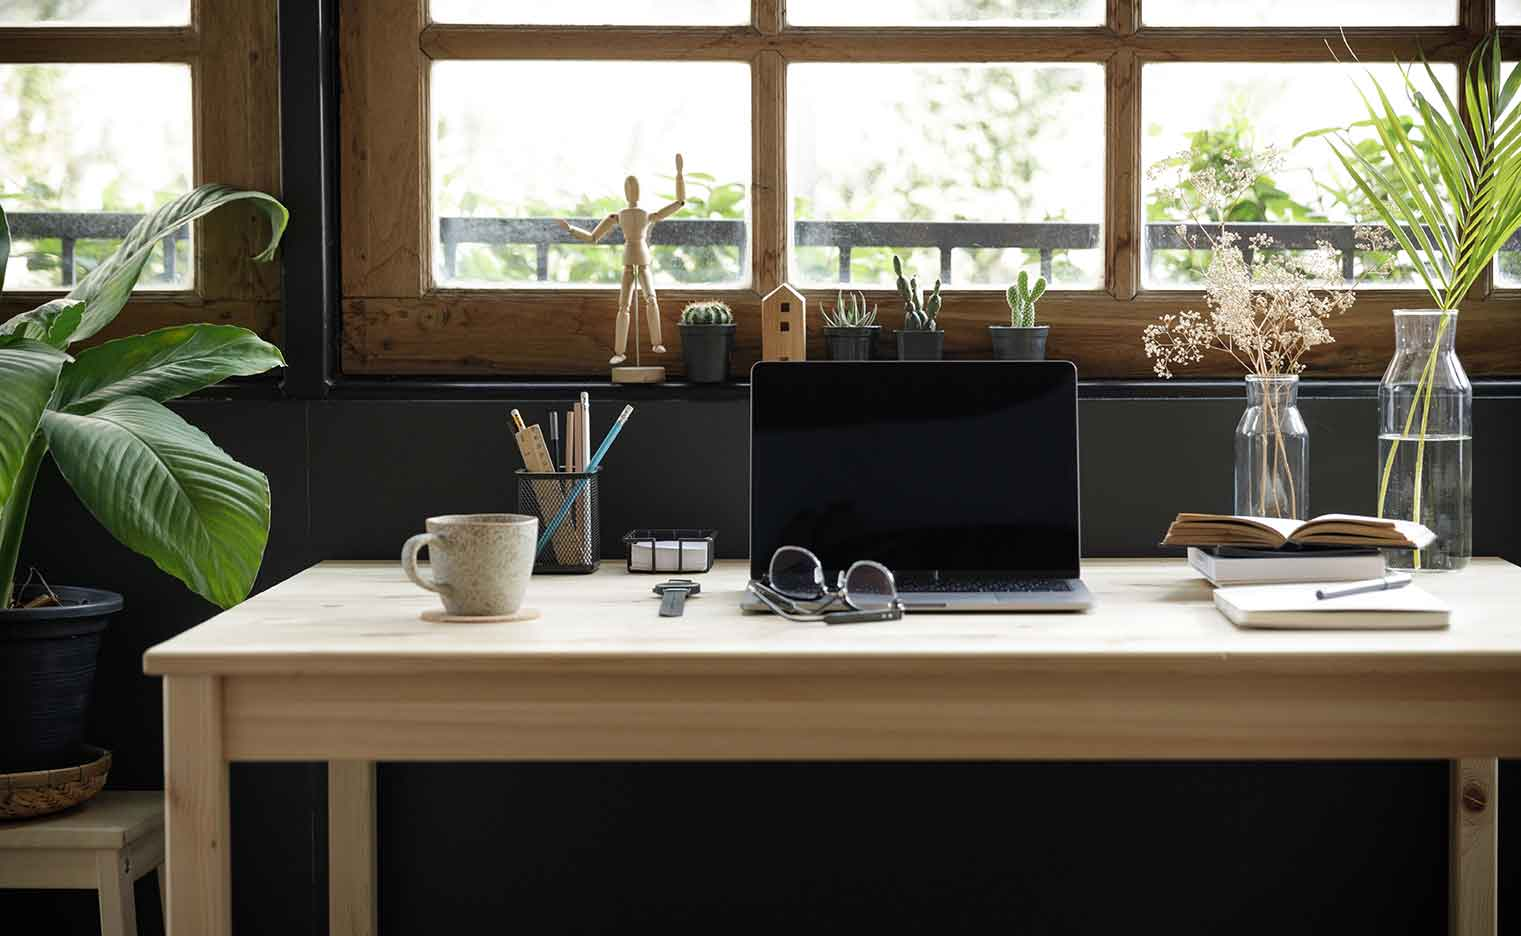 Home Office Plants can help improve your productivity